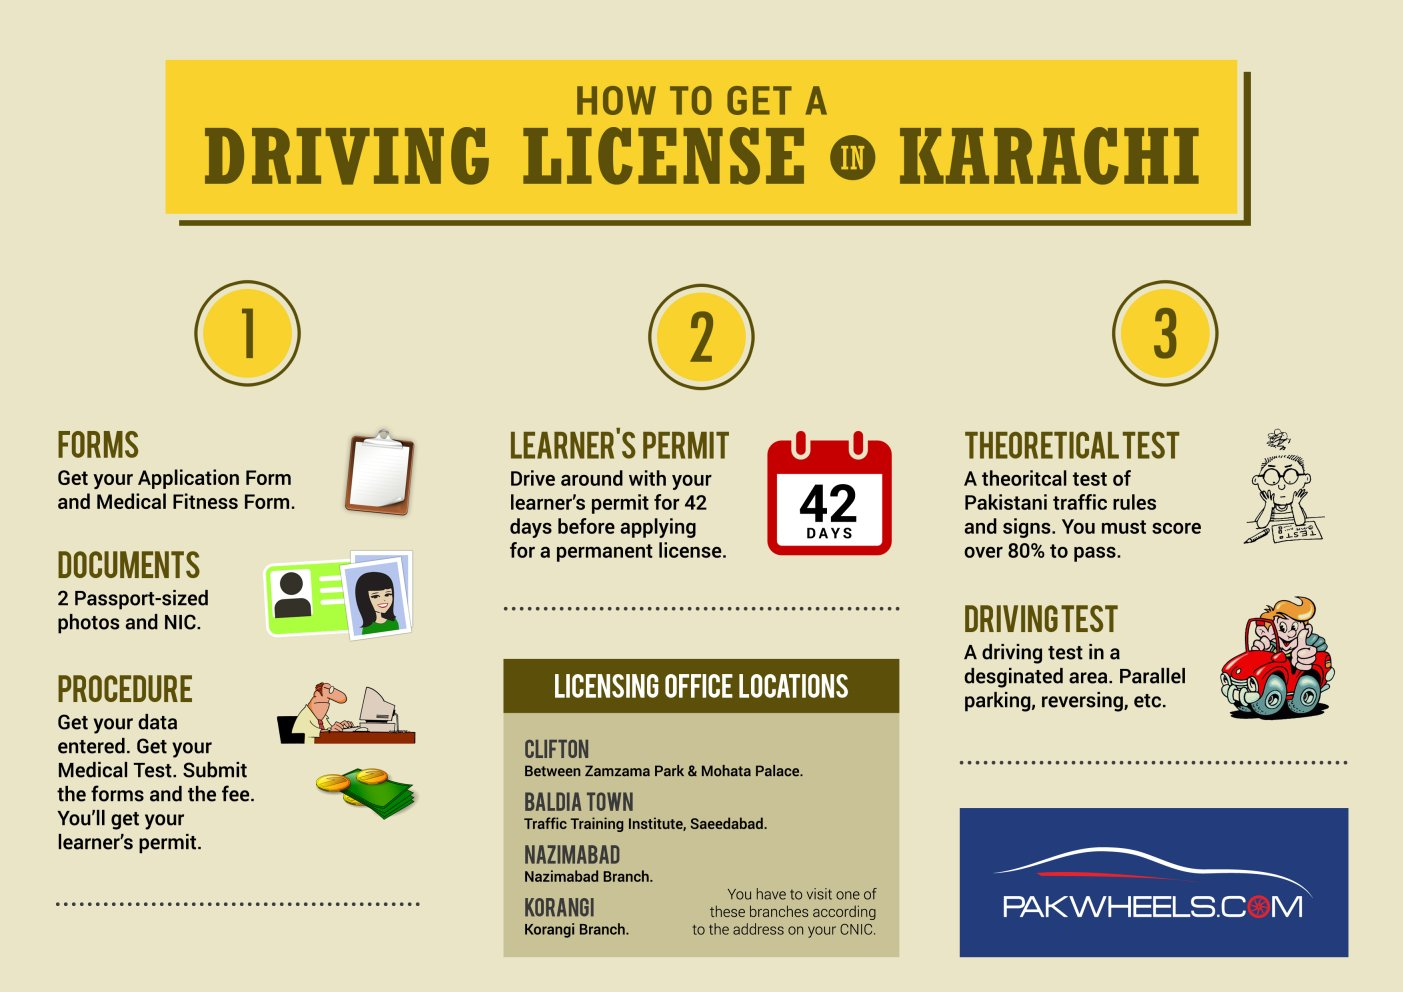 Driving license in karachi how to get one pakwheels blog for Documents required for driving license